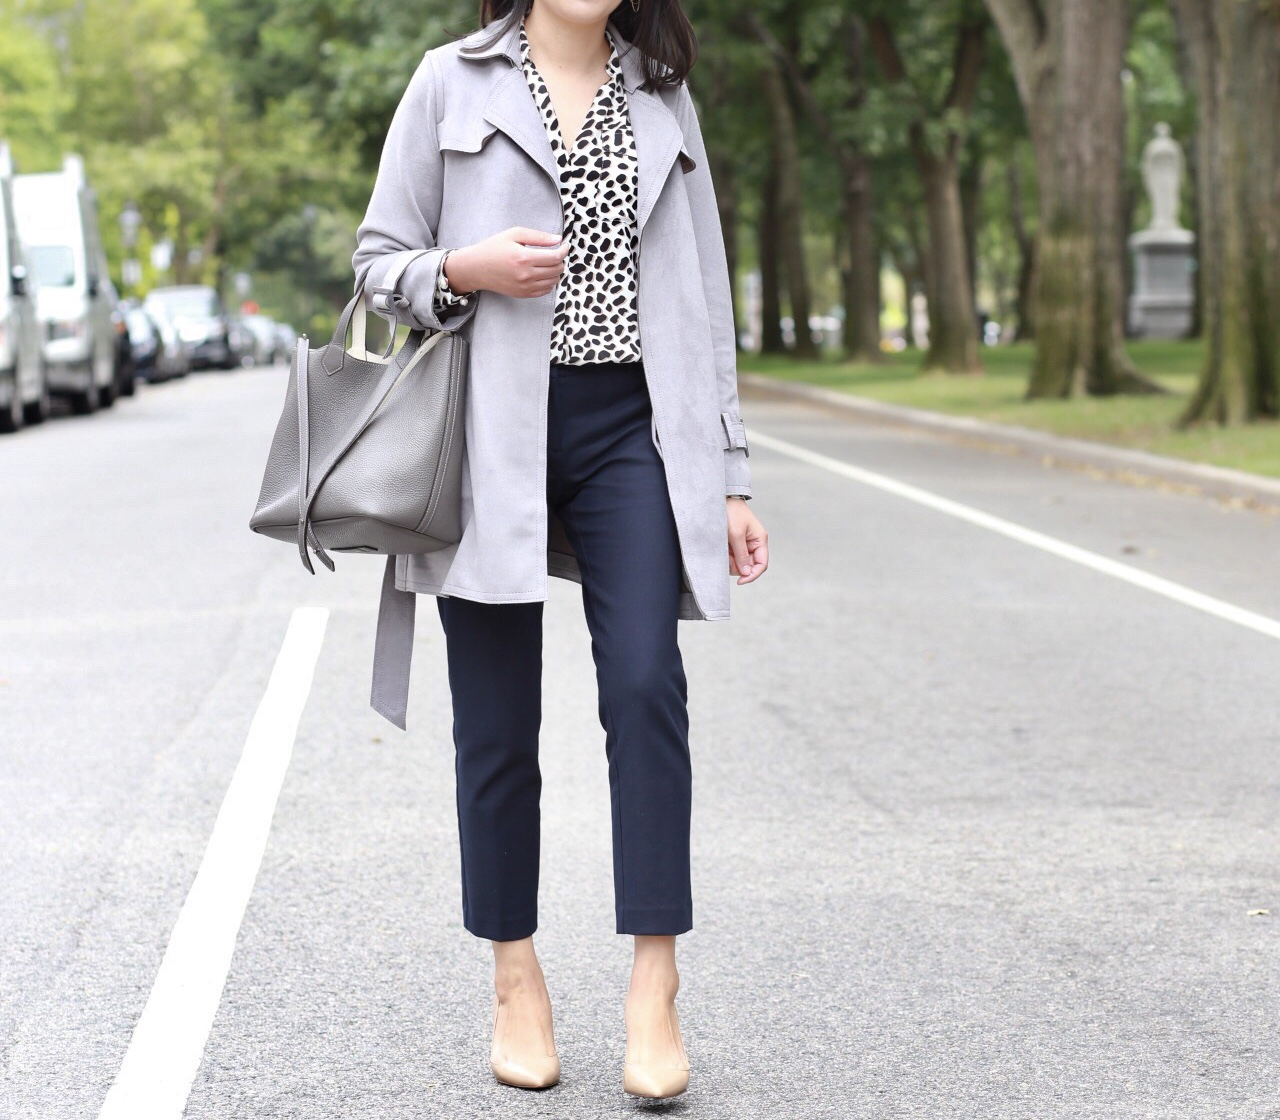 Fall Neutrals: Grey + Cheetah Print